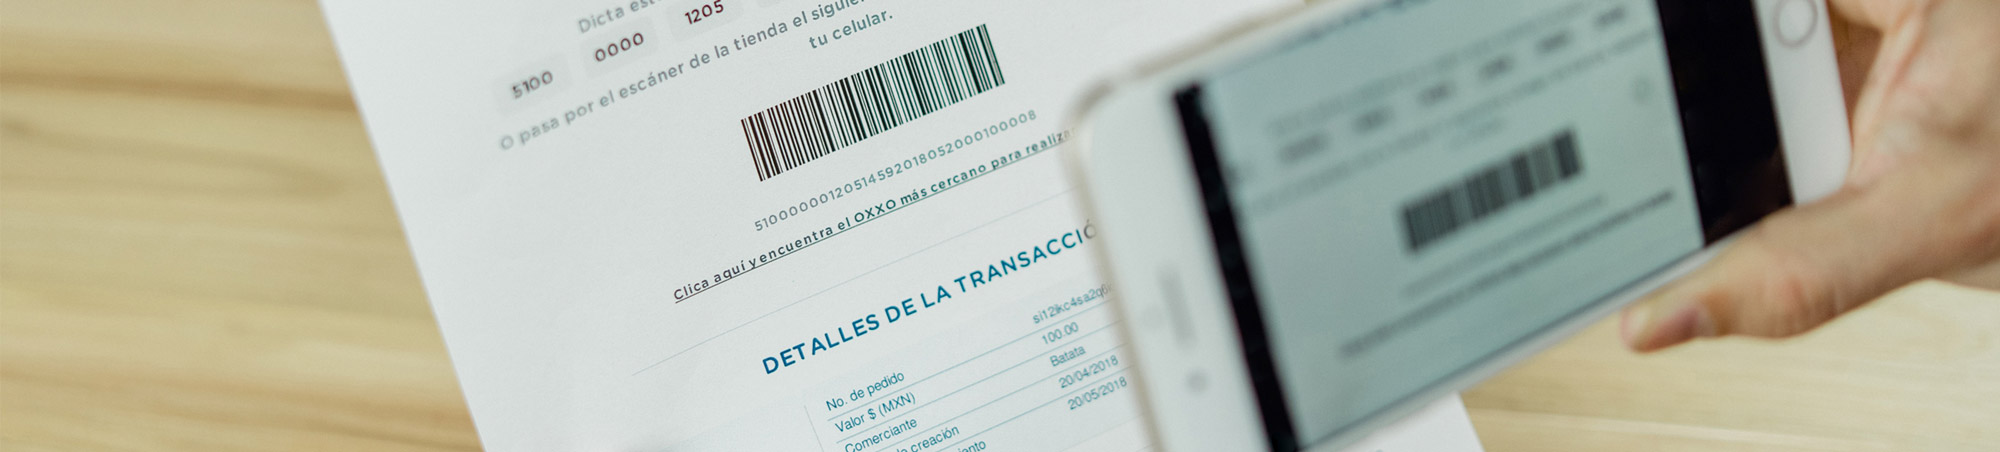 Voucher payments in Latin America